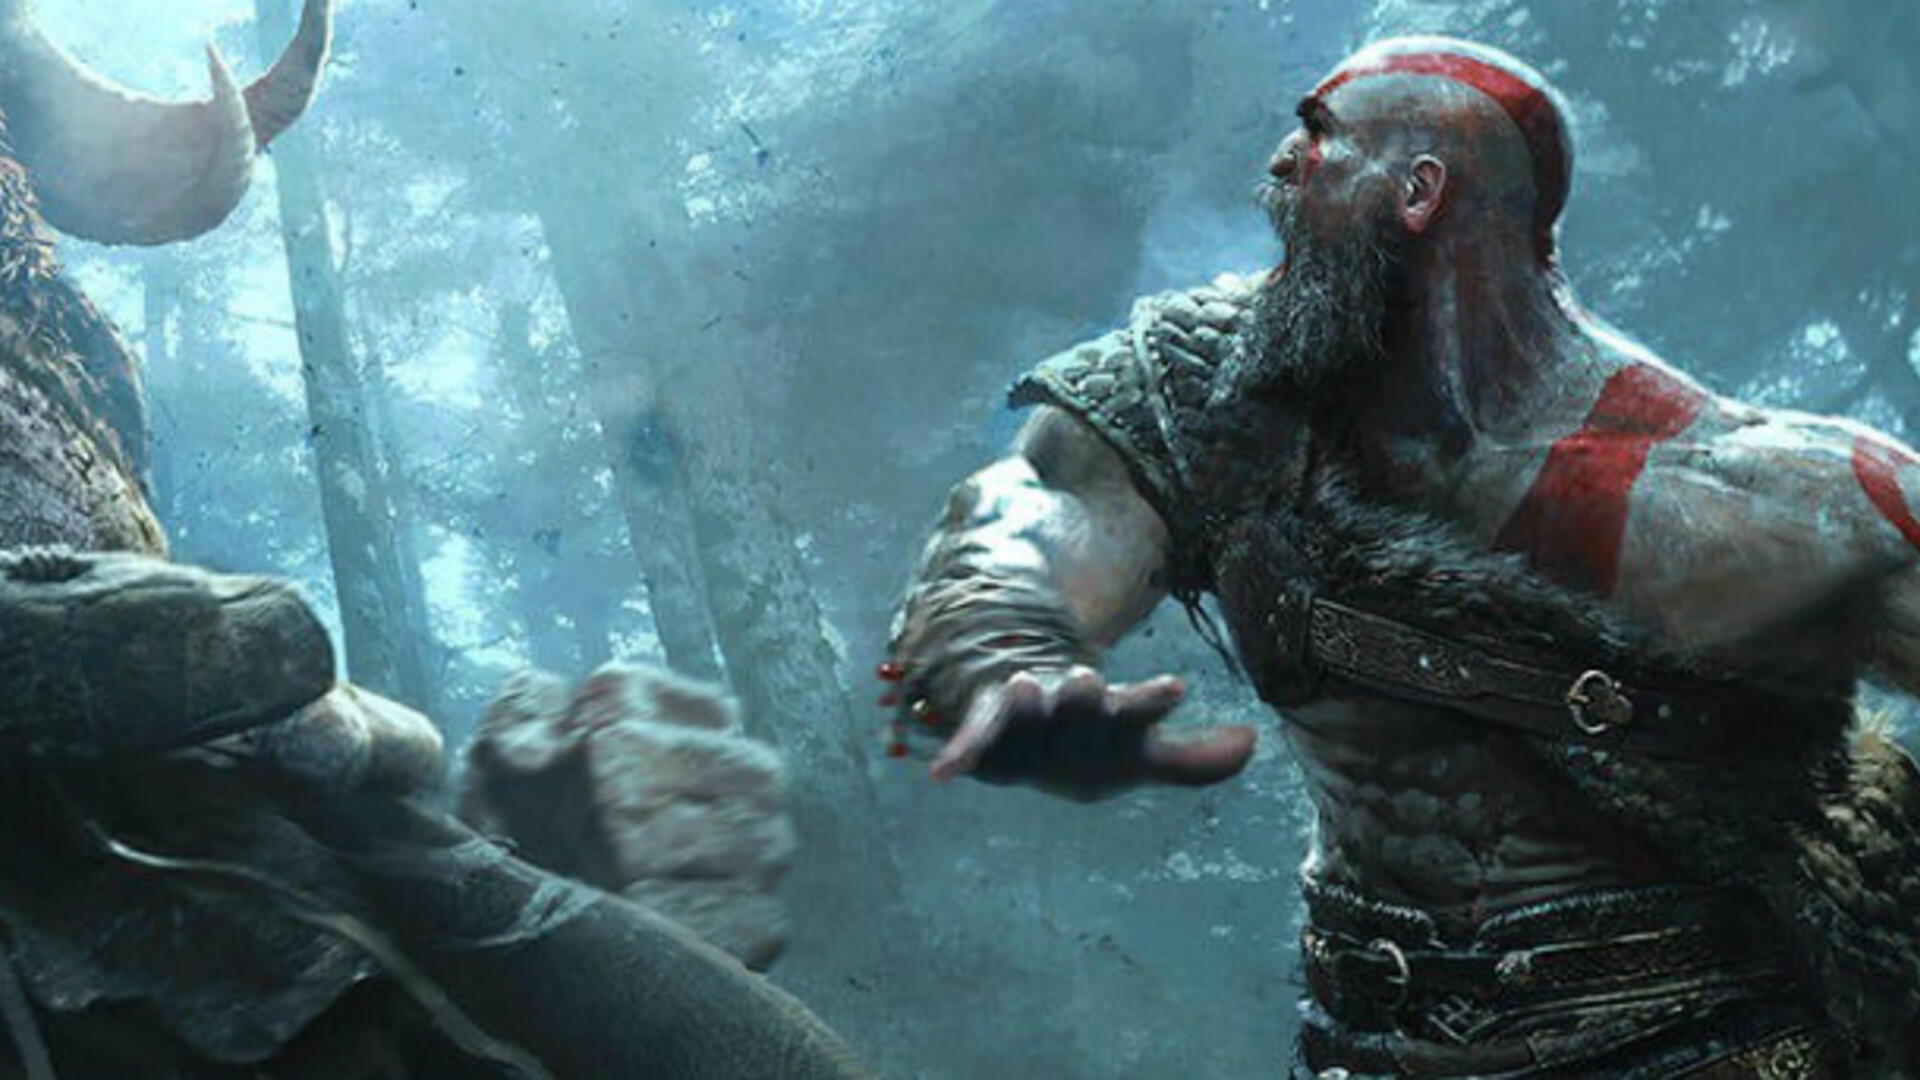 God Of War Is Stunning In 4k And Hdr But Lacks A Locked